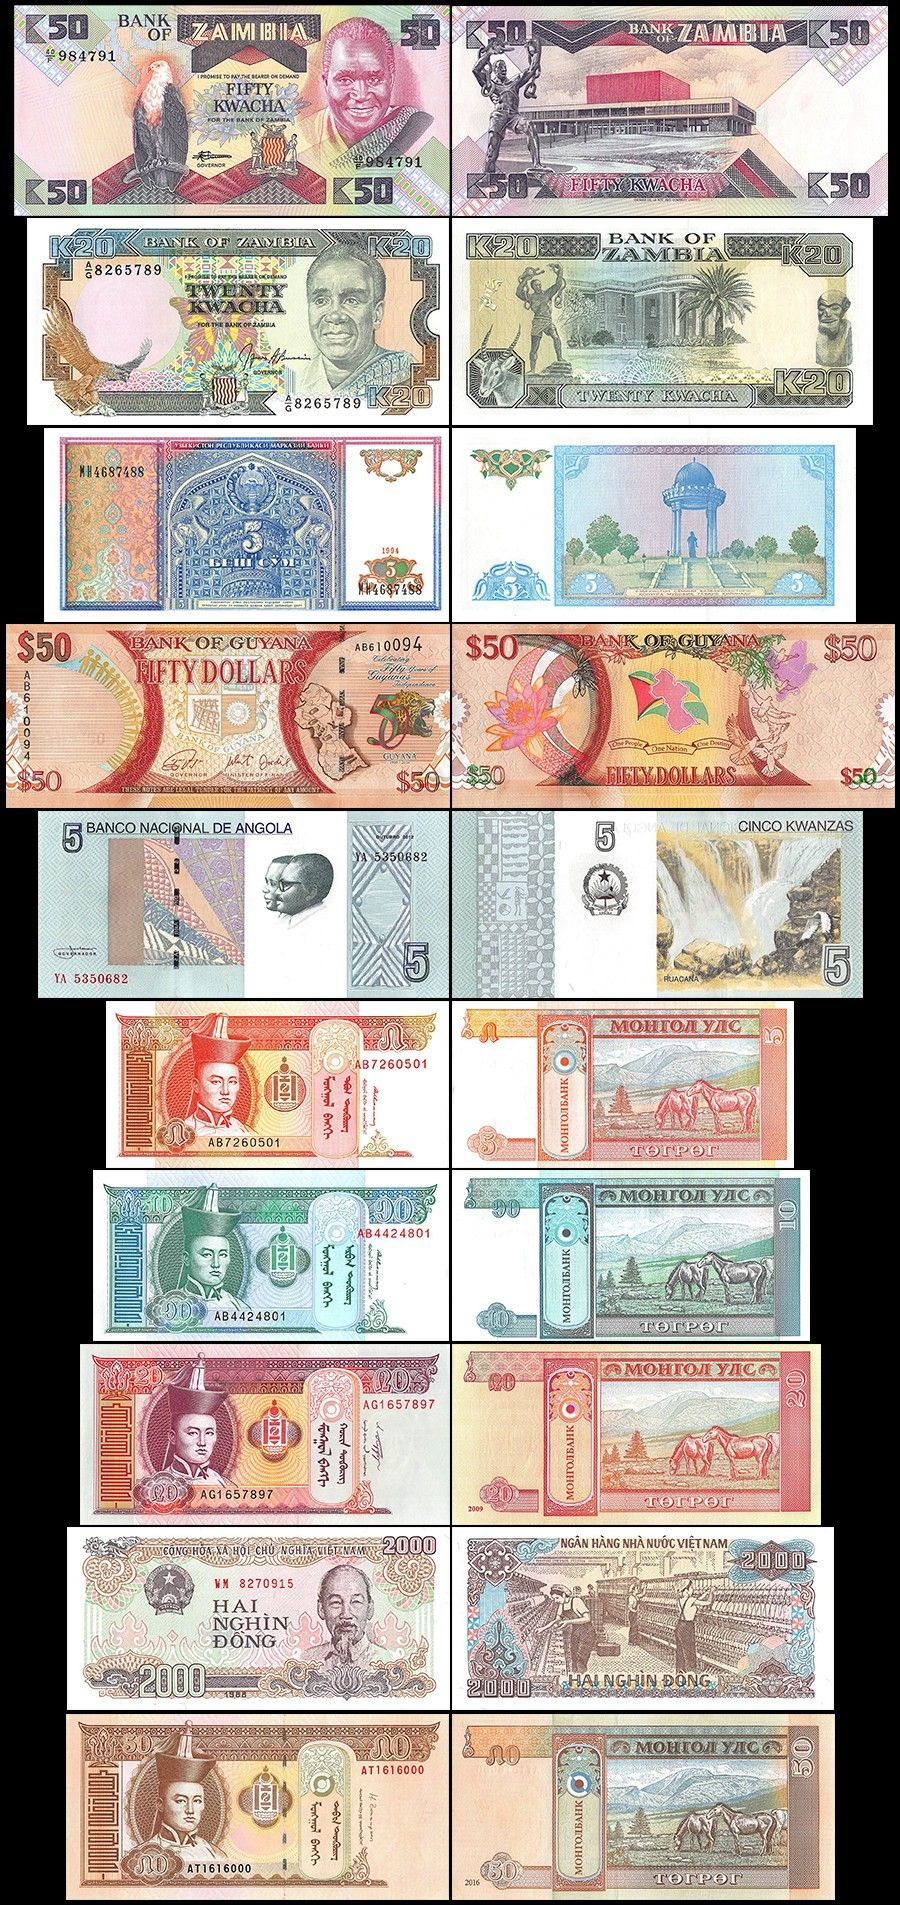 100 Pieces (PCS) of Different World MIX Foreign Banknotes